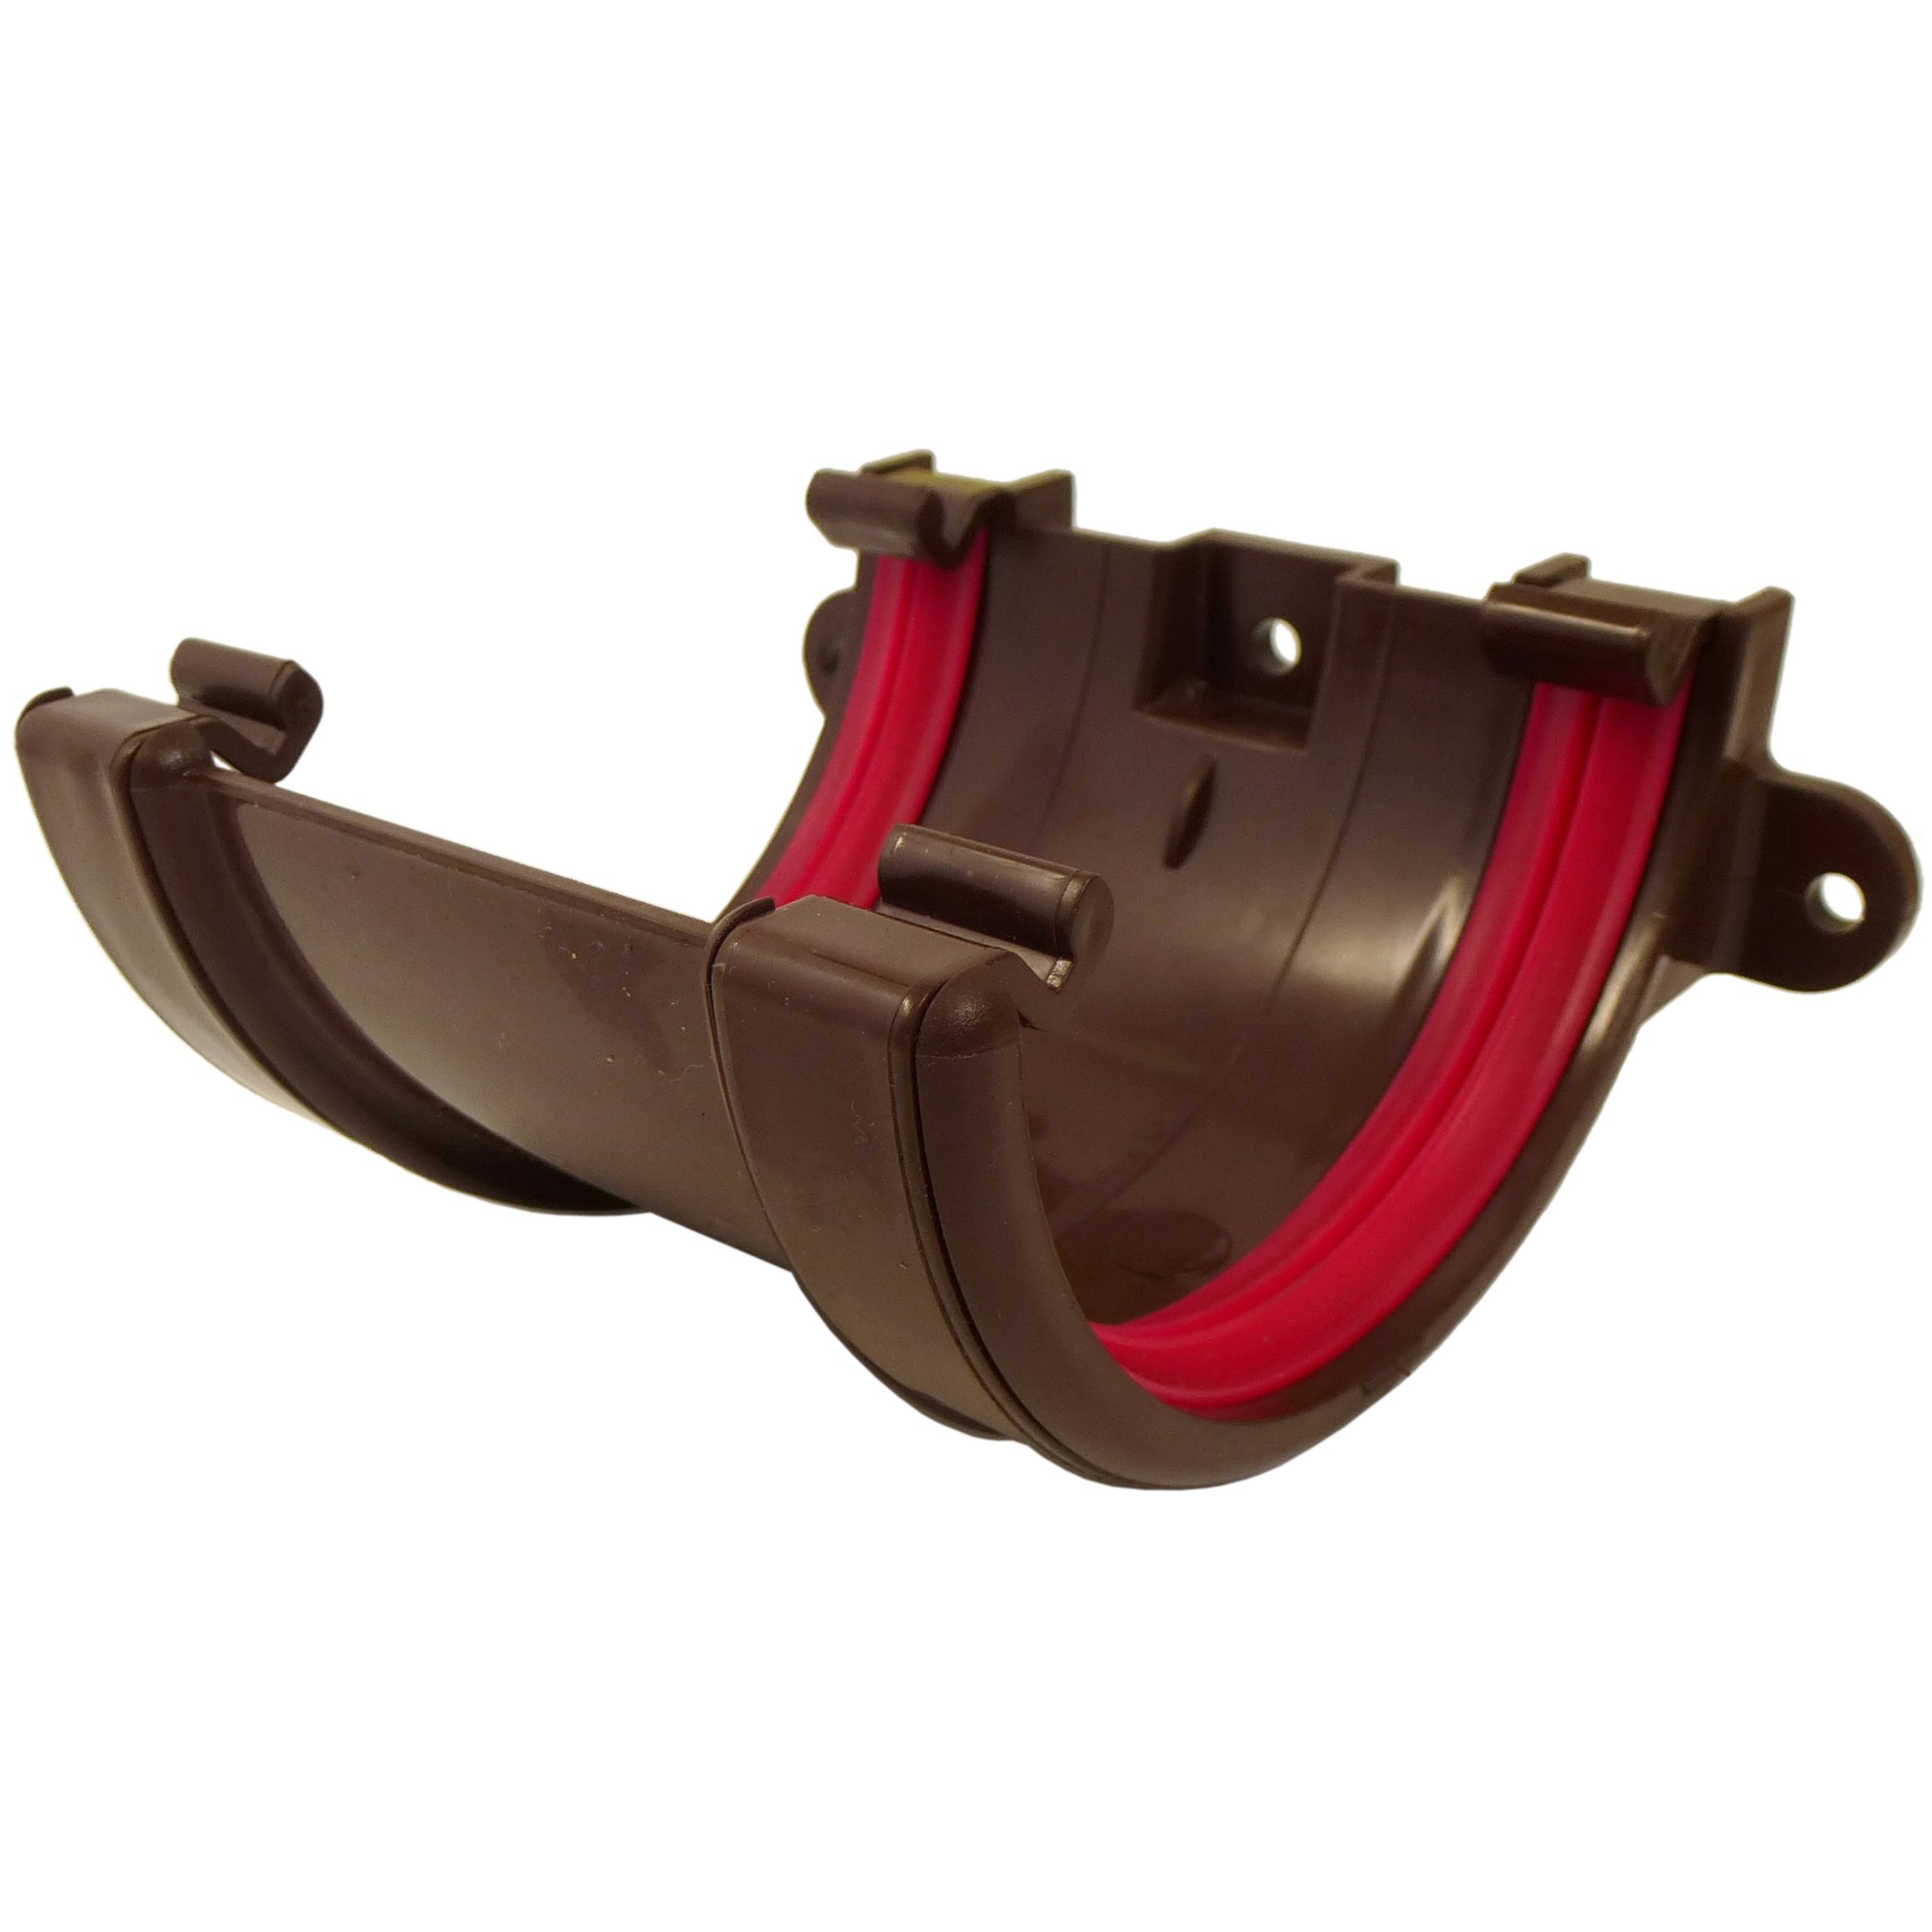 Freeflow 112mm Half Round Gutter Union Bracket - Brown